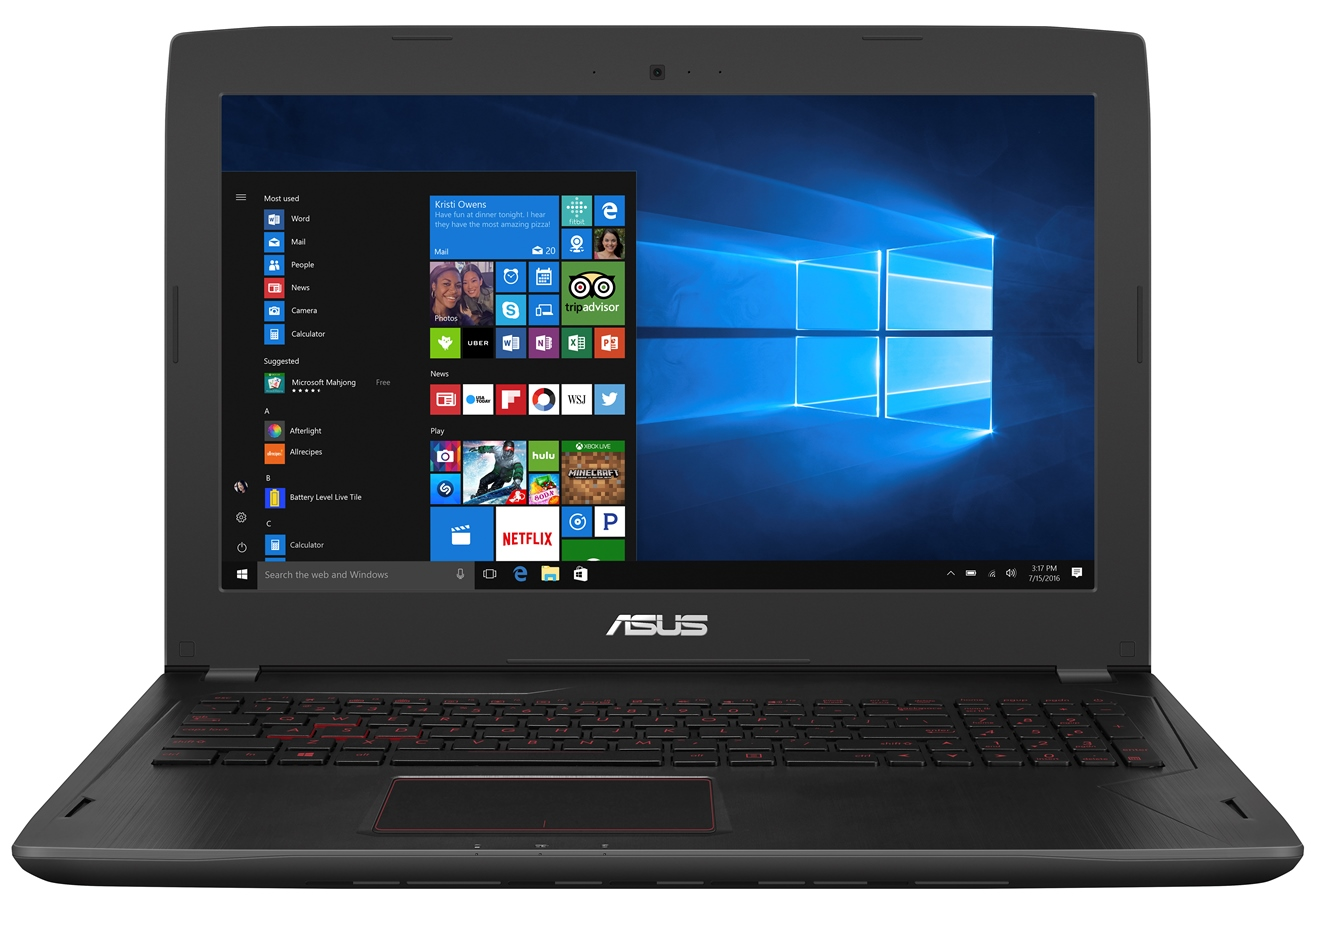 "ASUS FX502VE-FY047T i7-7700HQ/8G/1T 5400 ot./15,6"" IPS/GTX1050Ti 4GB/HD/W10/Black"